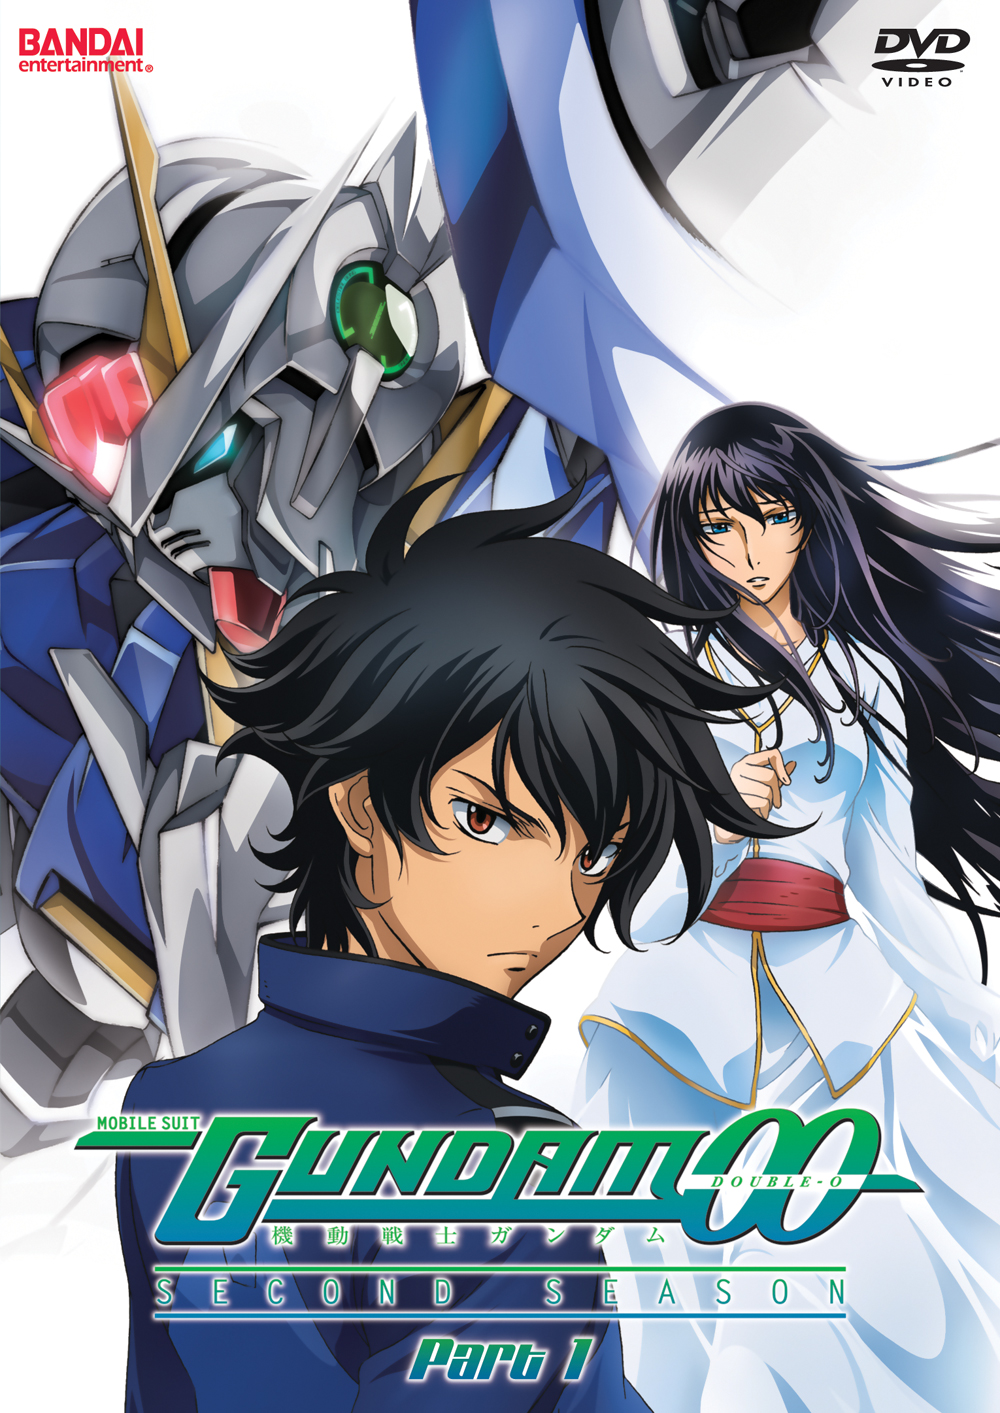 Mobile Suit Gundam 00 Season 2 Part 1 DVD 669198804311